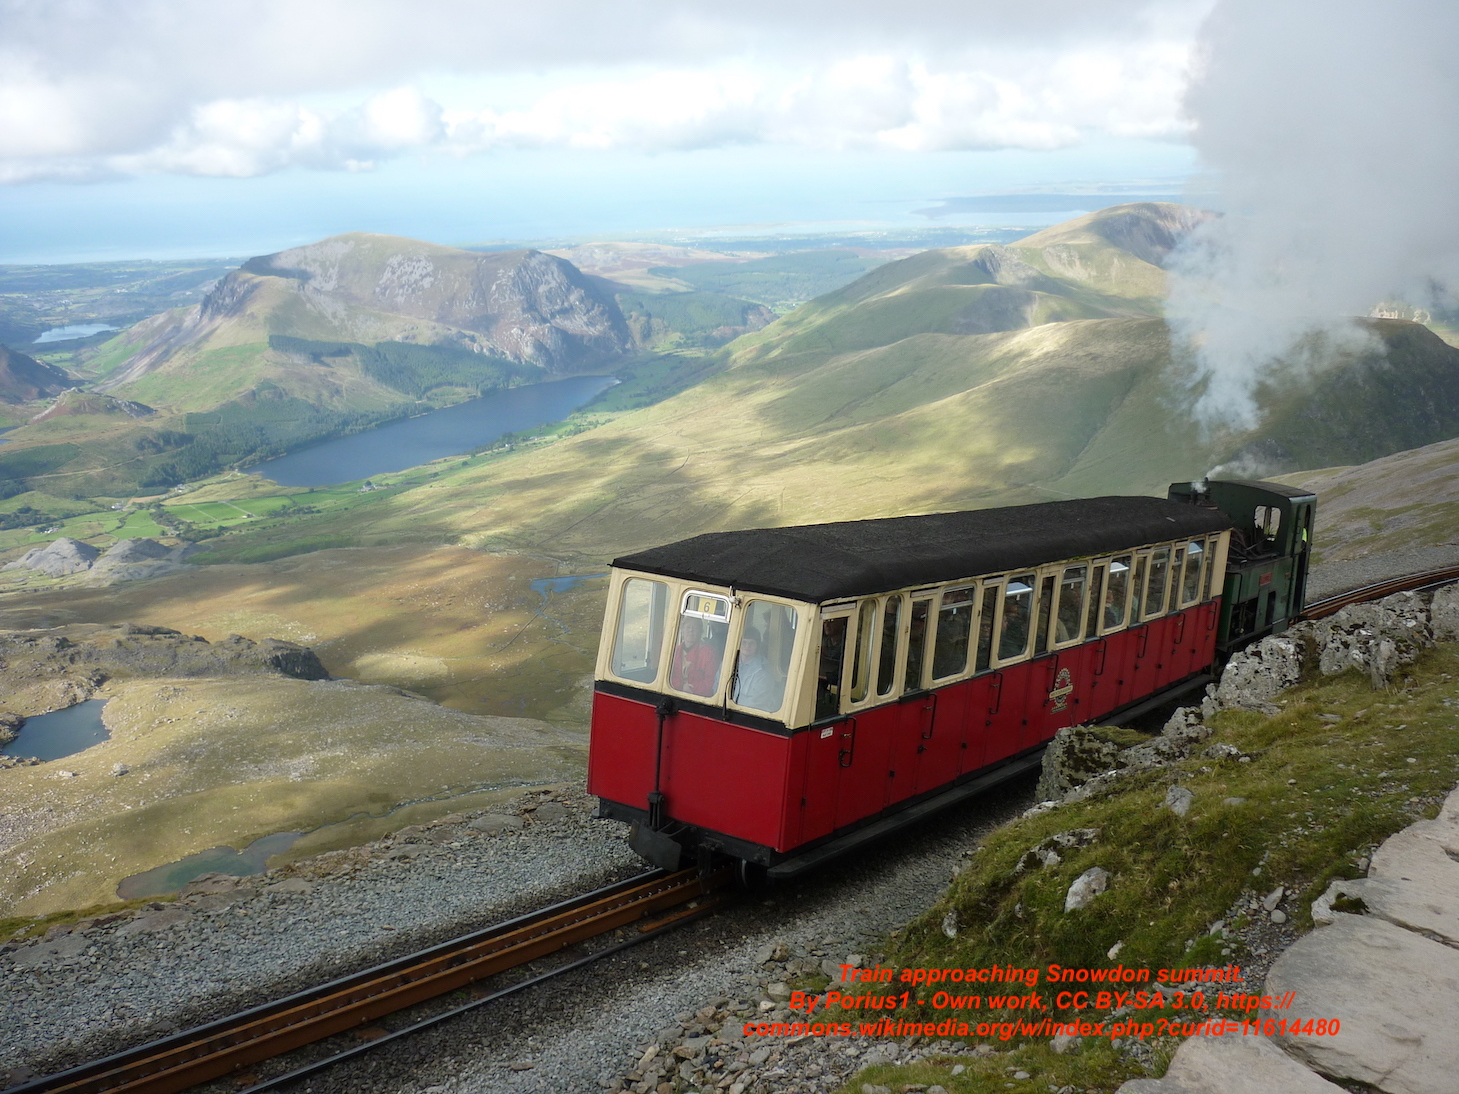 TrainatSnowdonSummit copy